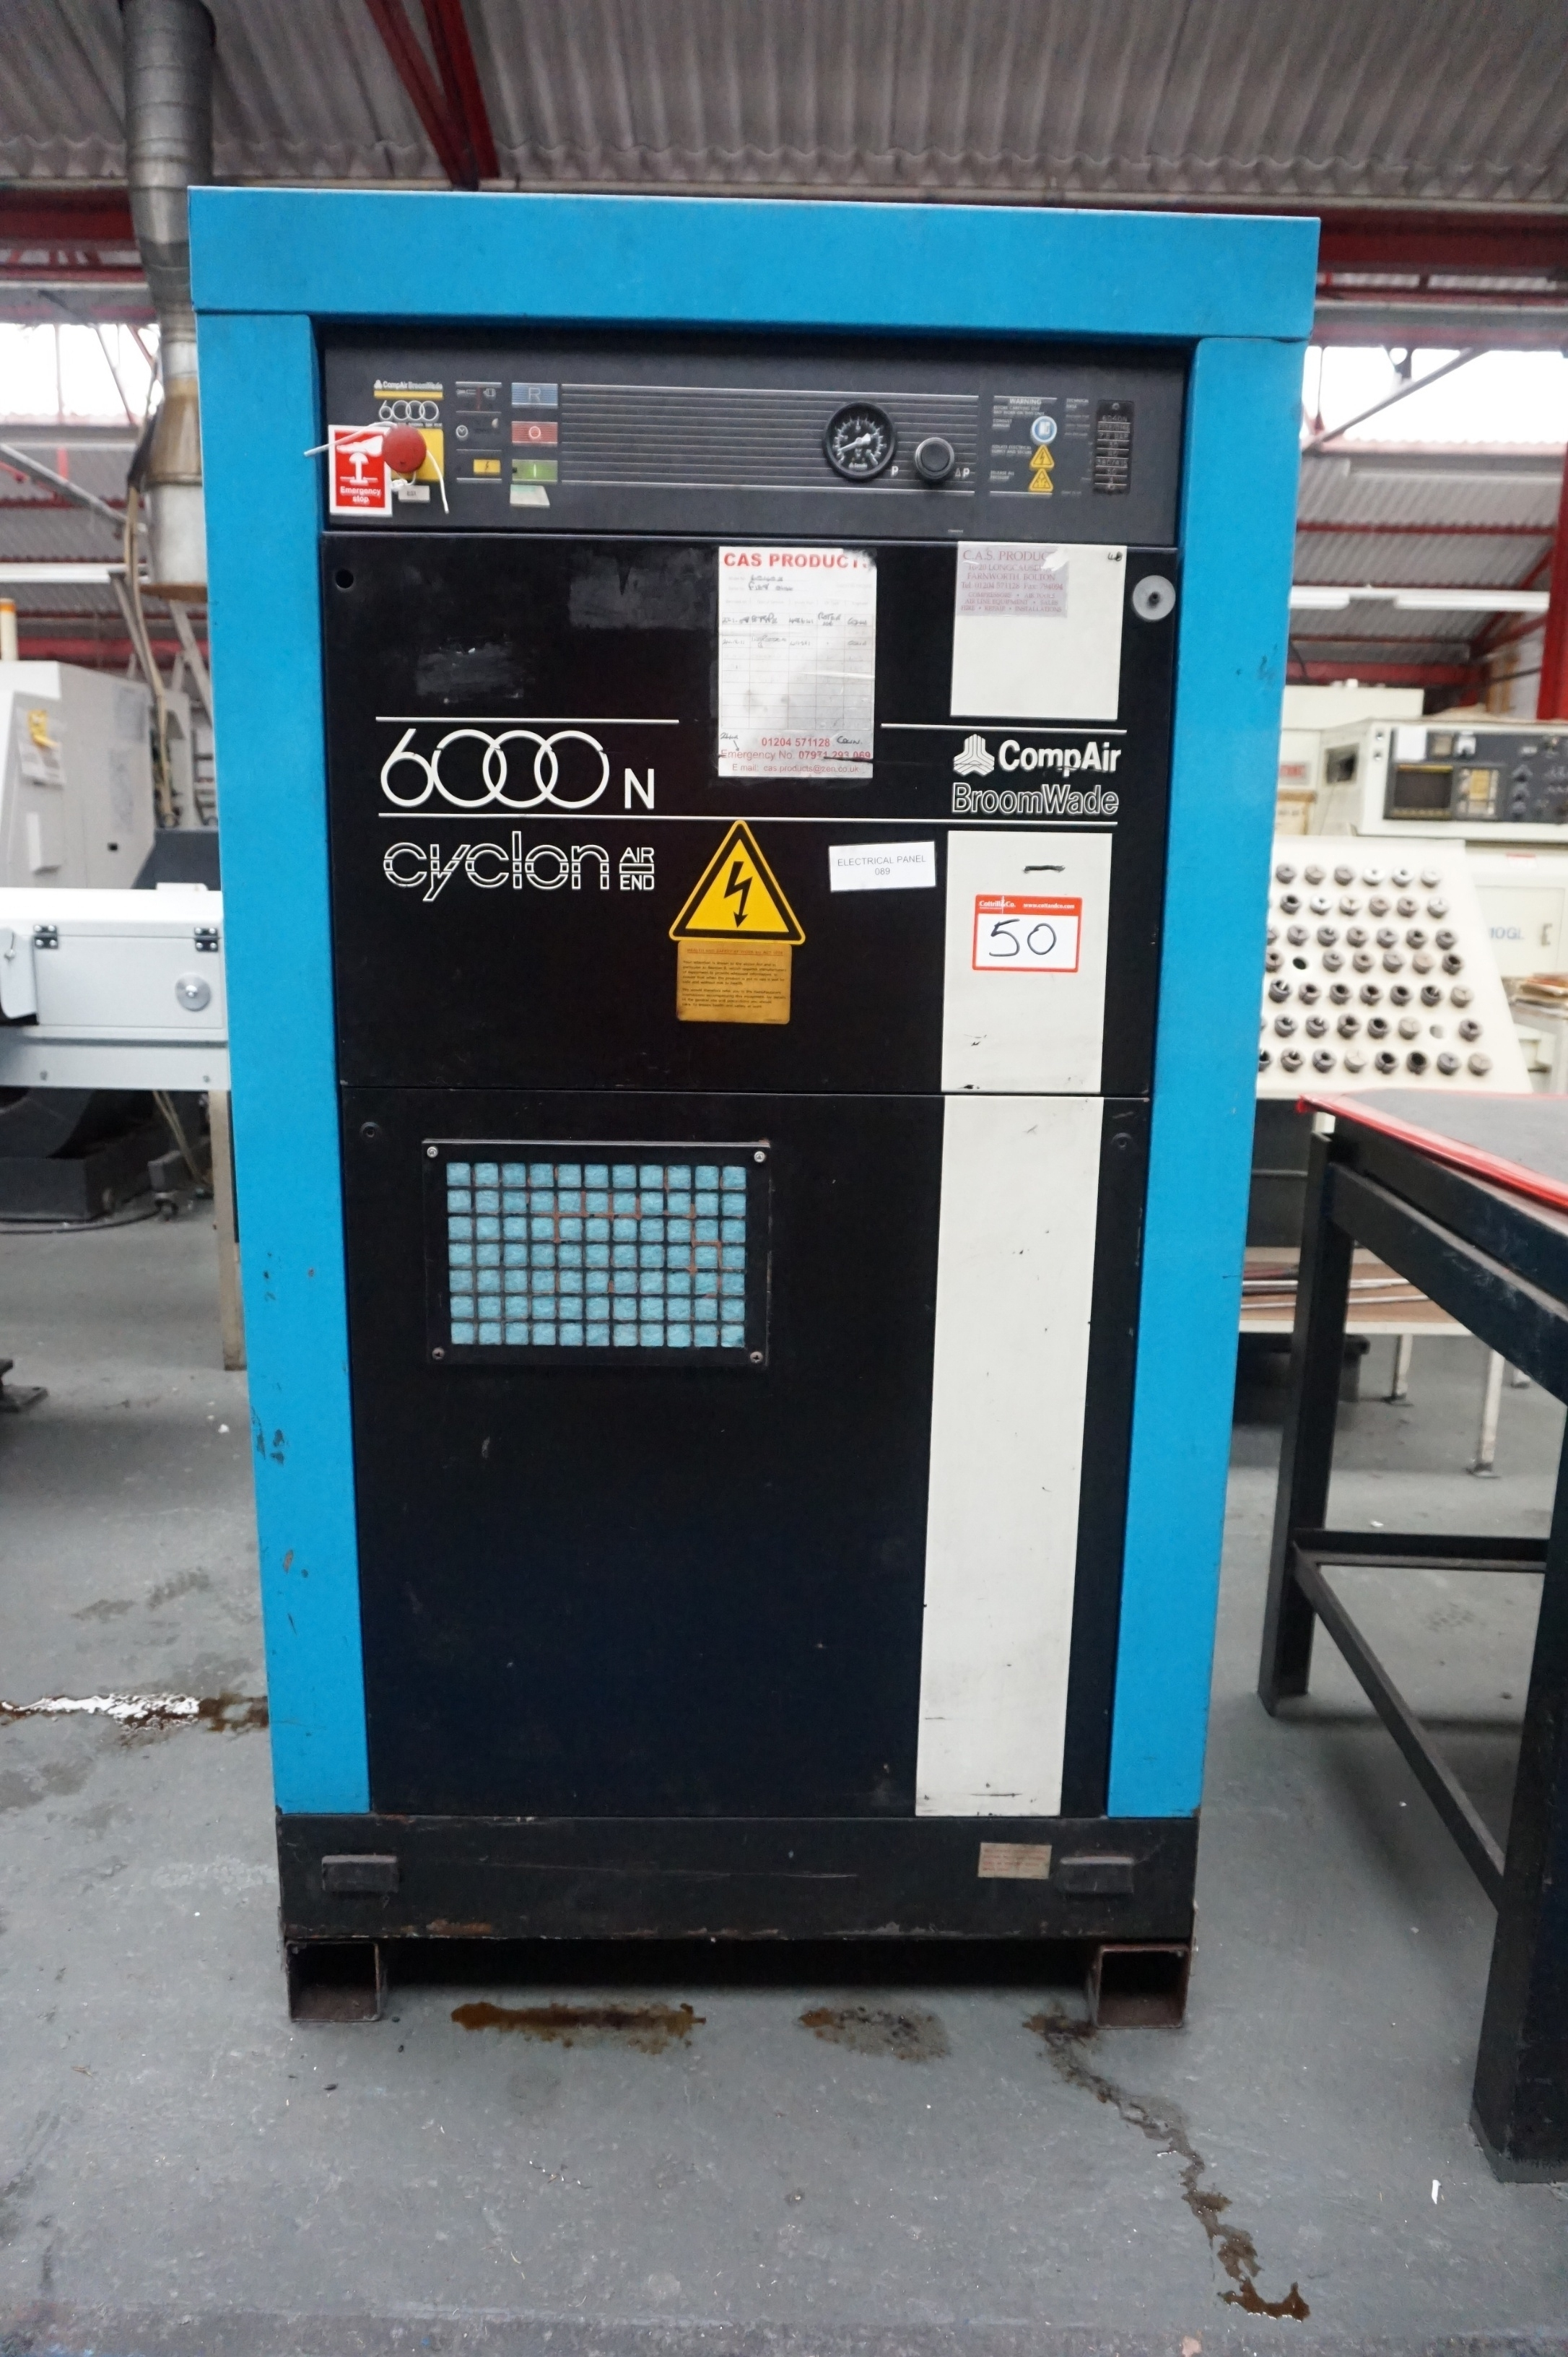 Item description. Compair 6040N Broomwade 6000N Cyclon ...